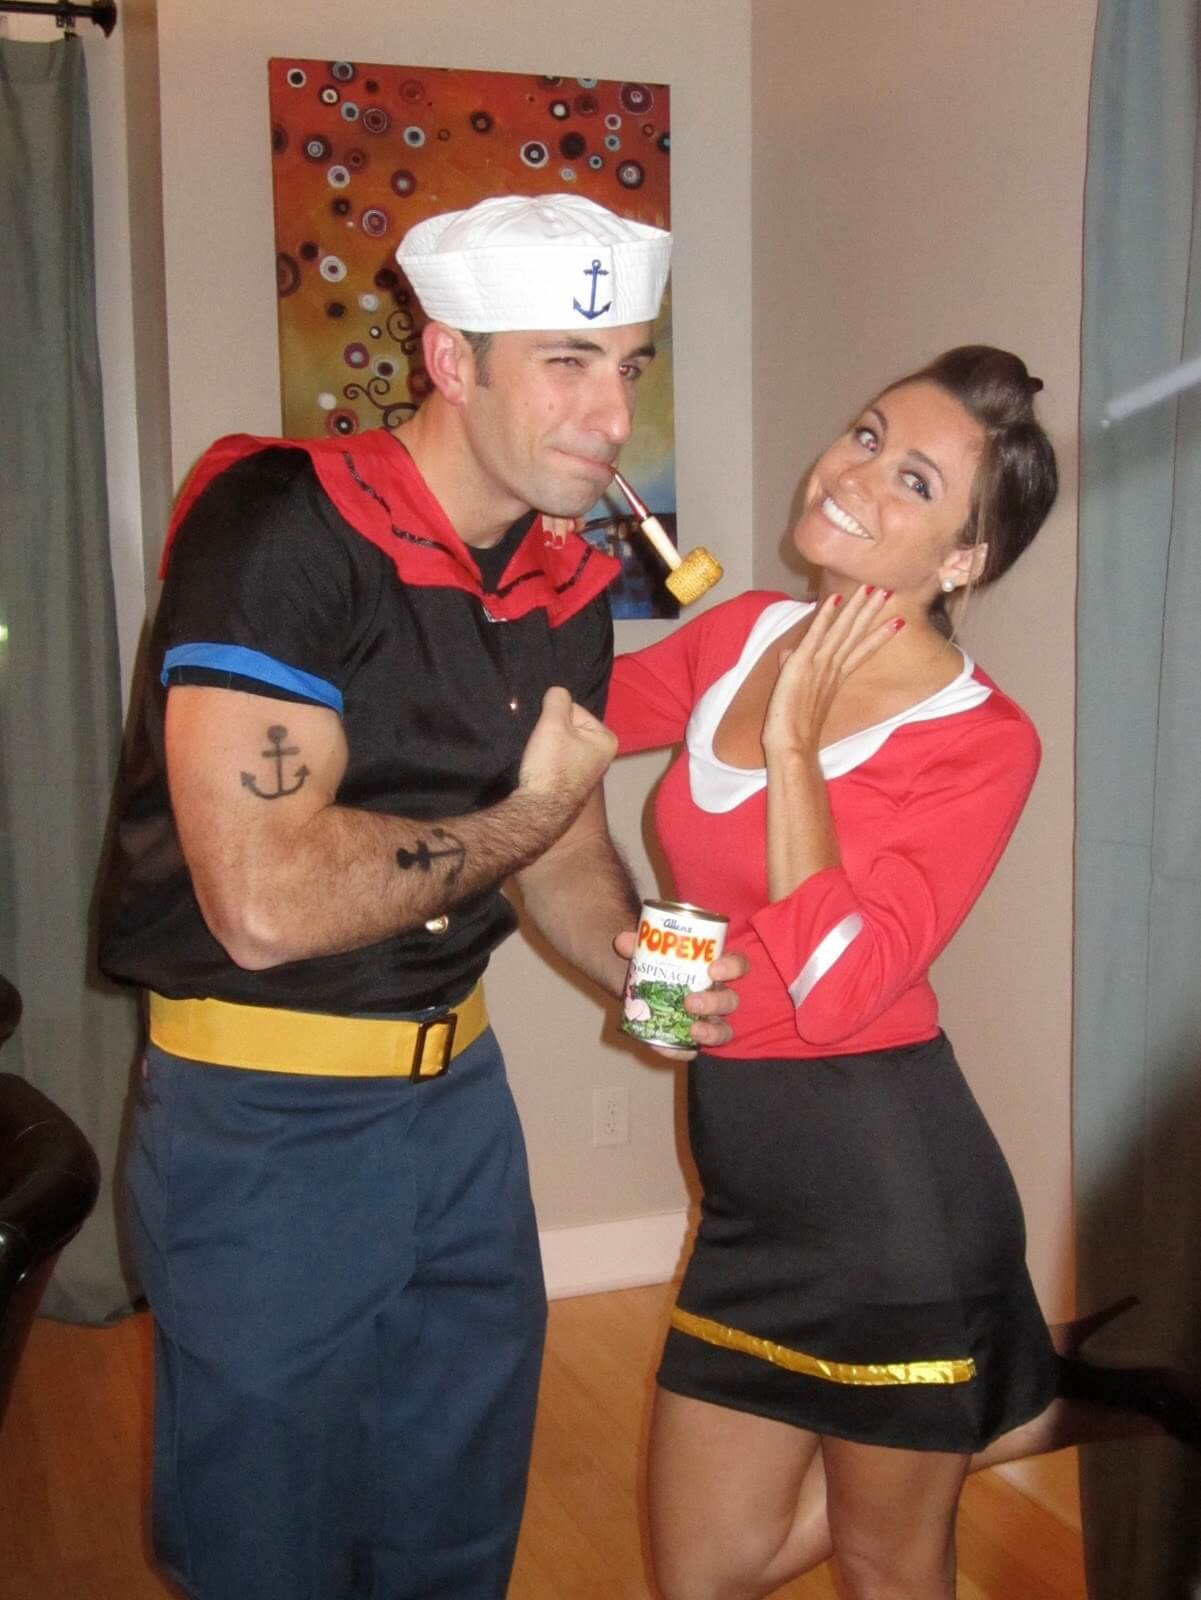 Popepy and olive funny halloween costume for couples